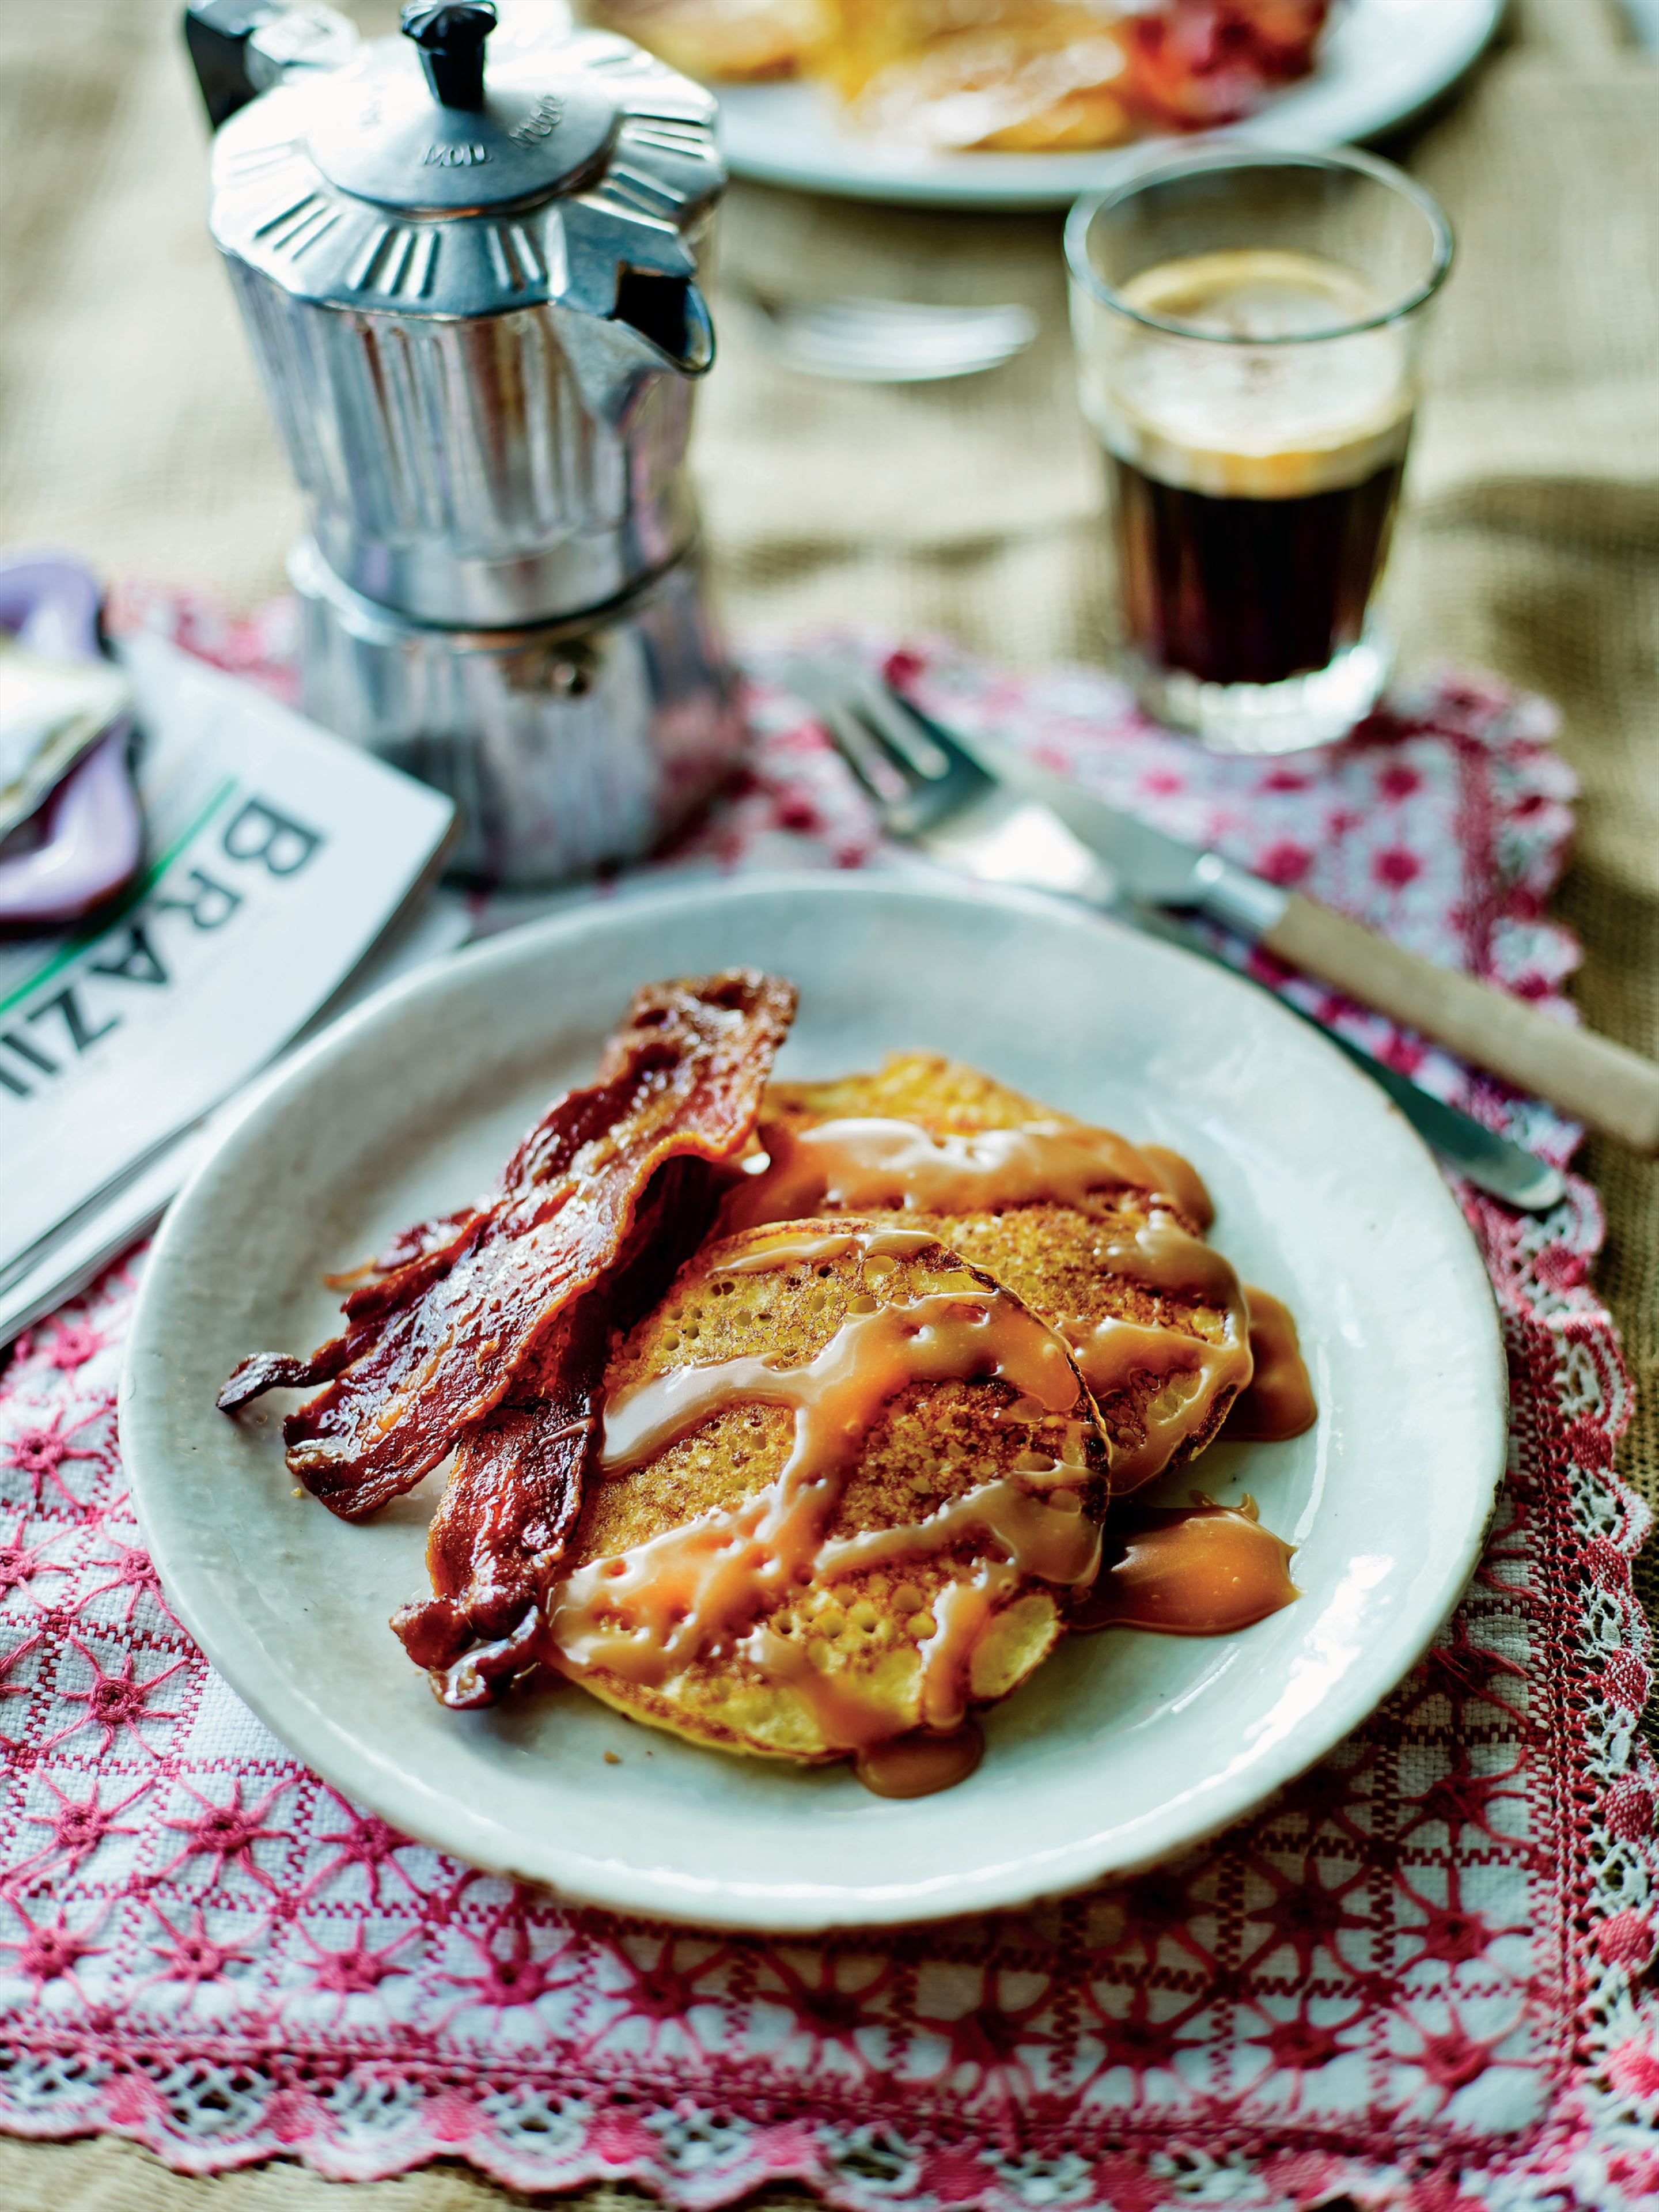 Corn cakes with bacon and doce de leite